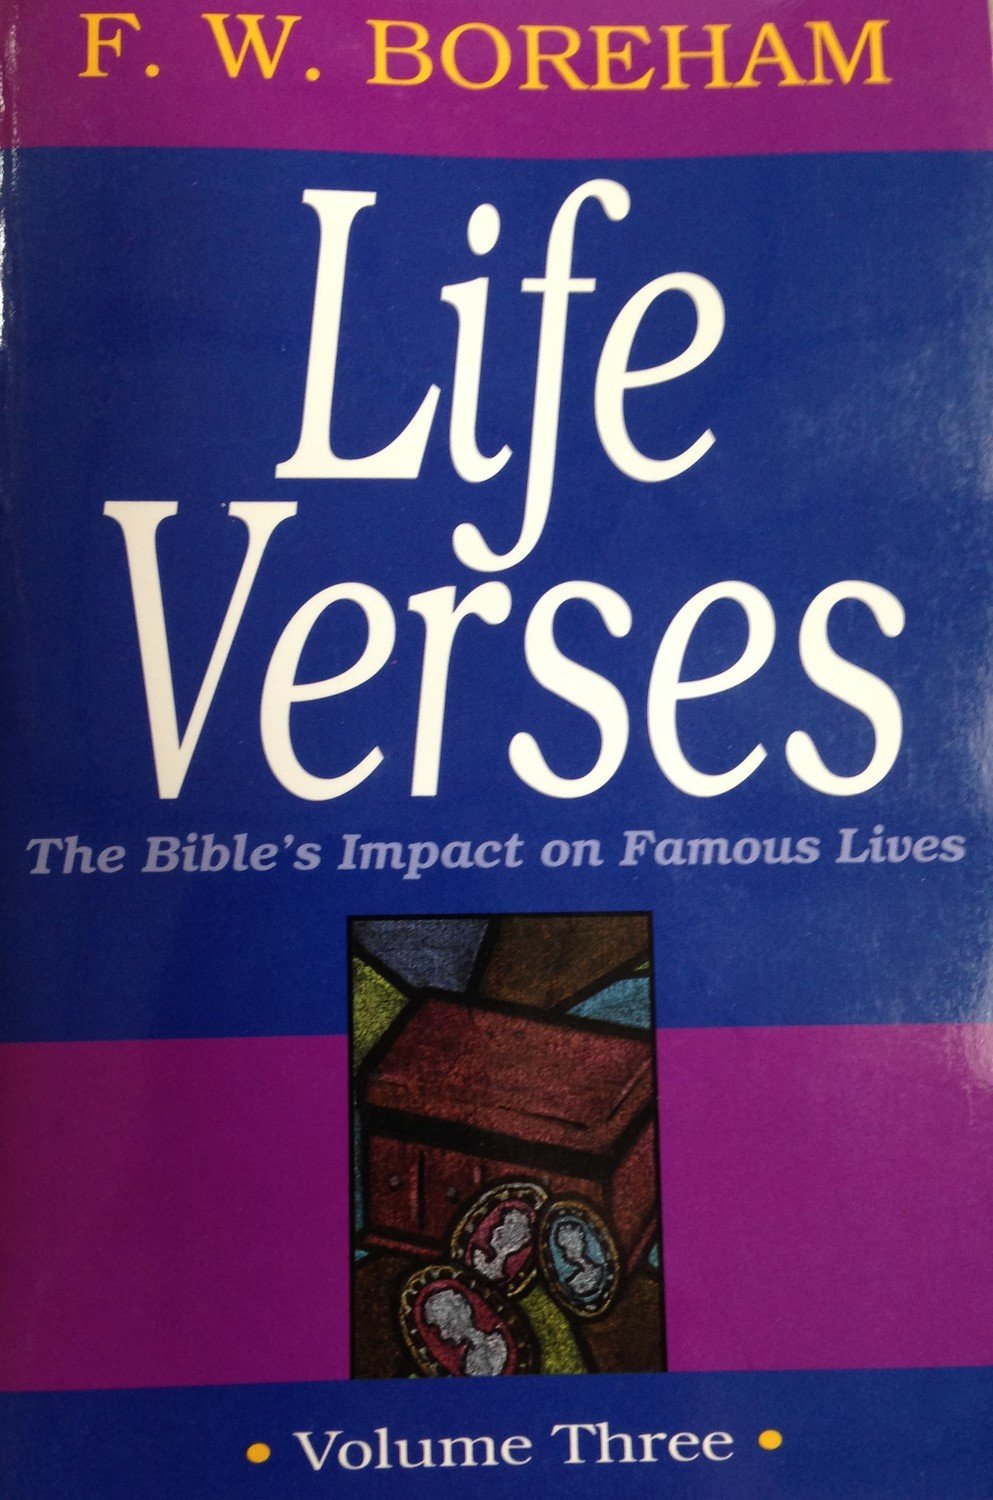 Life Verses:  The Bible's Impact on Famous Lives Volume 3 by F.W. Boreham